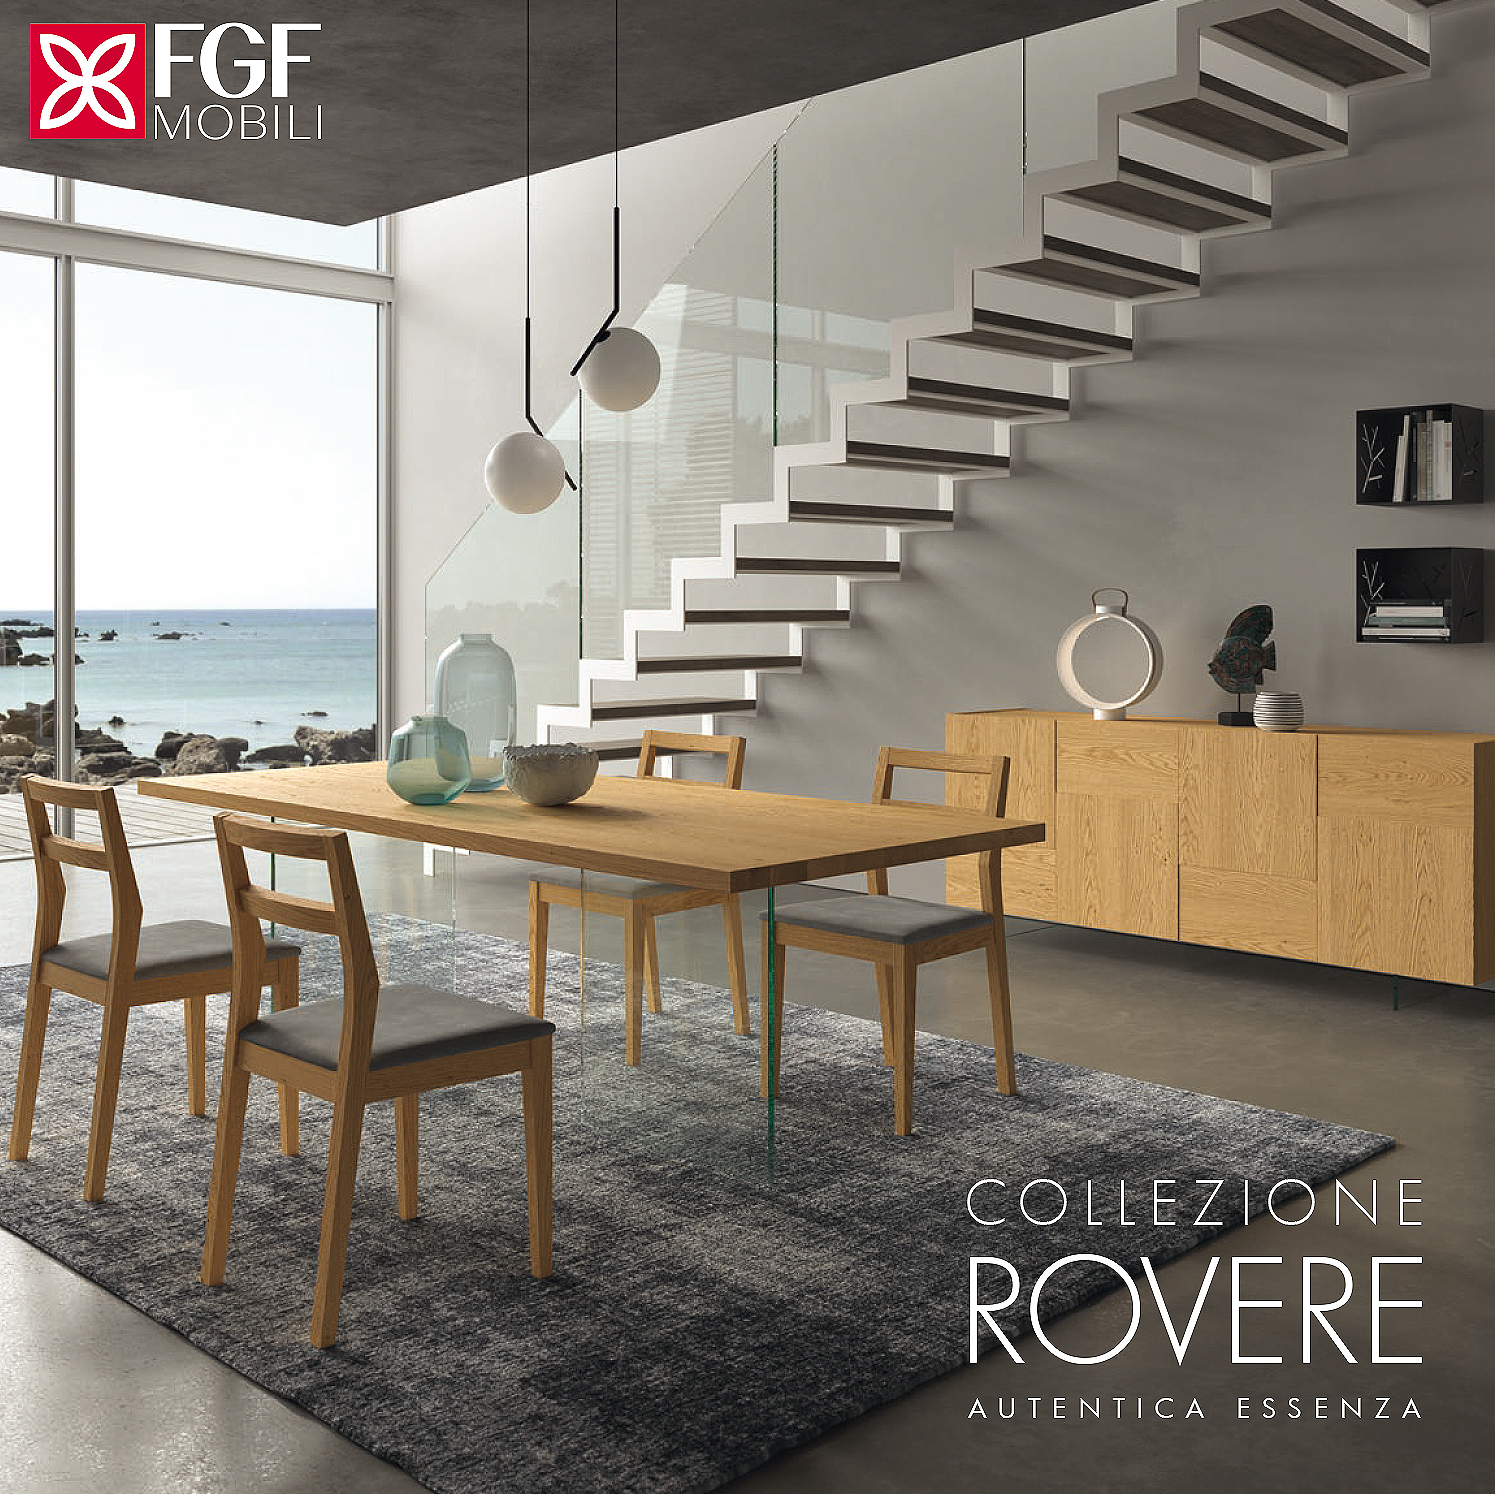 collection Rovere